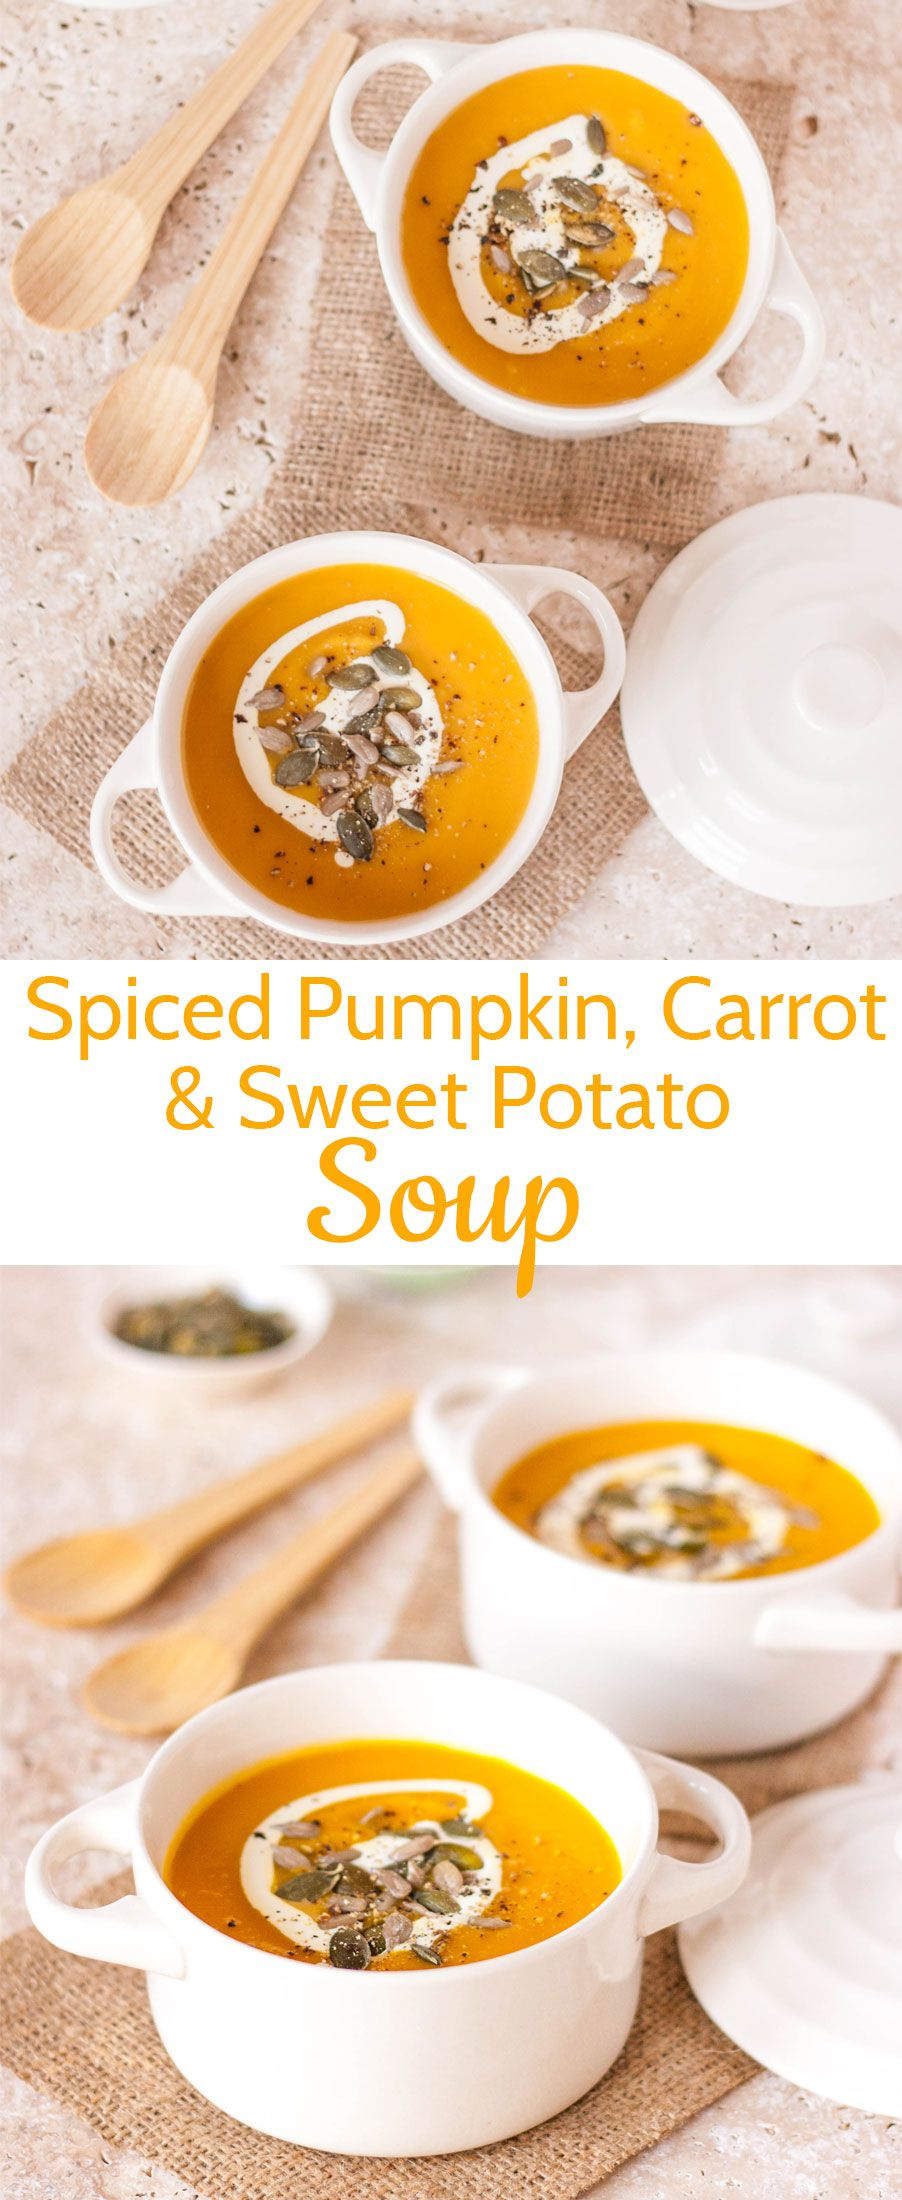 Spiced Pumpkin, Carrot & Sweet Potato Soup #fallfoods